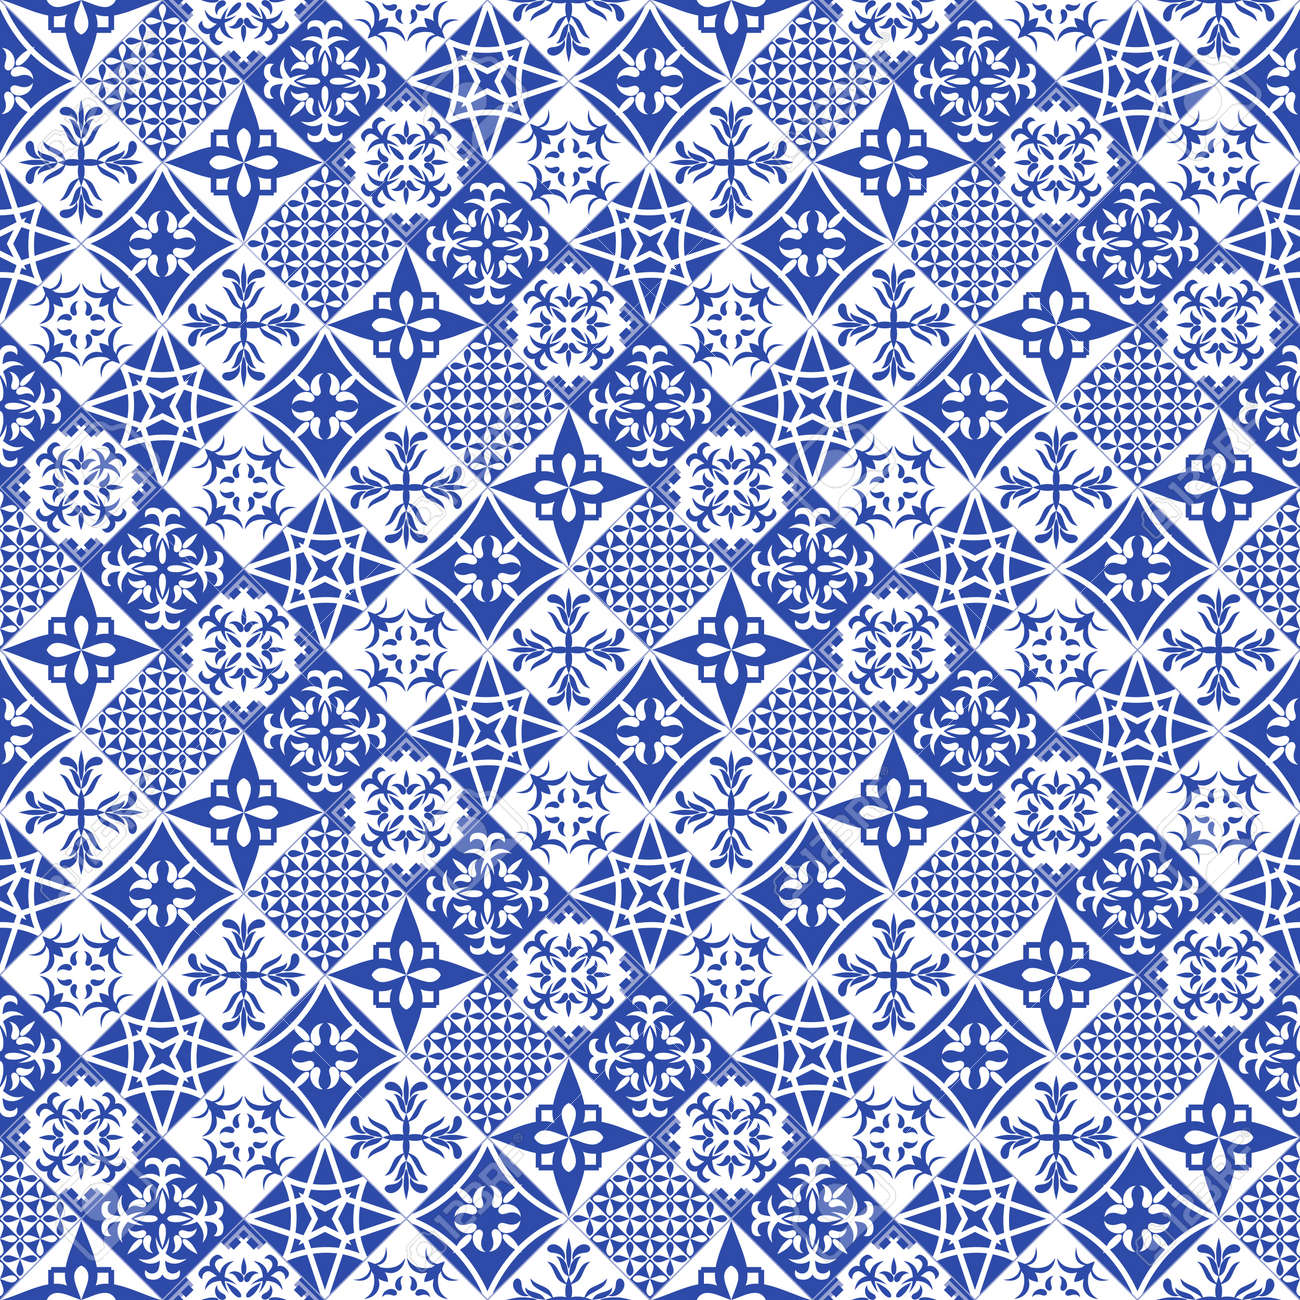 Portuguese style tiles background. Blue azulejos tiles from Portugal. - 169687753